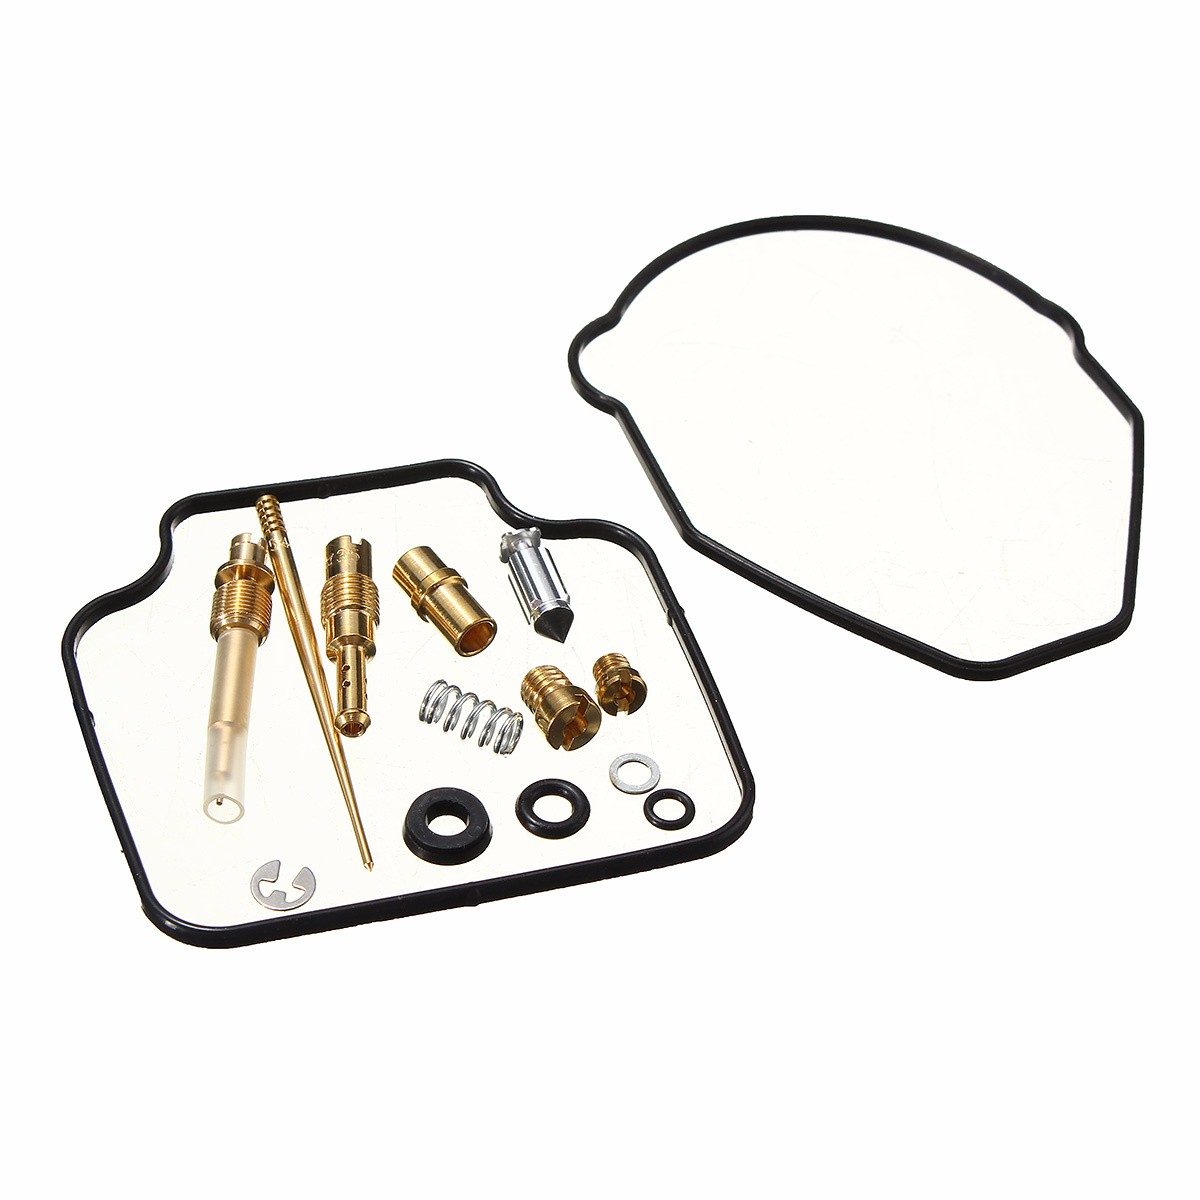 carb repair kit fourtrax carburetor rebuild tools set for